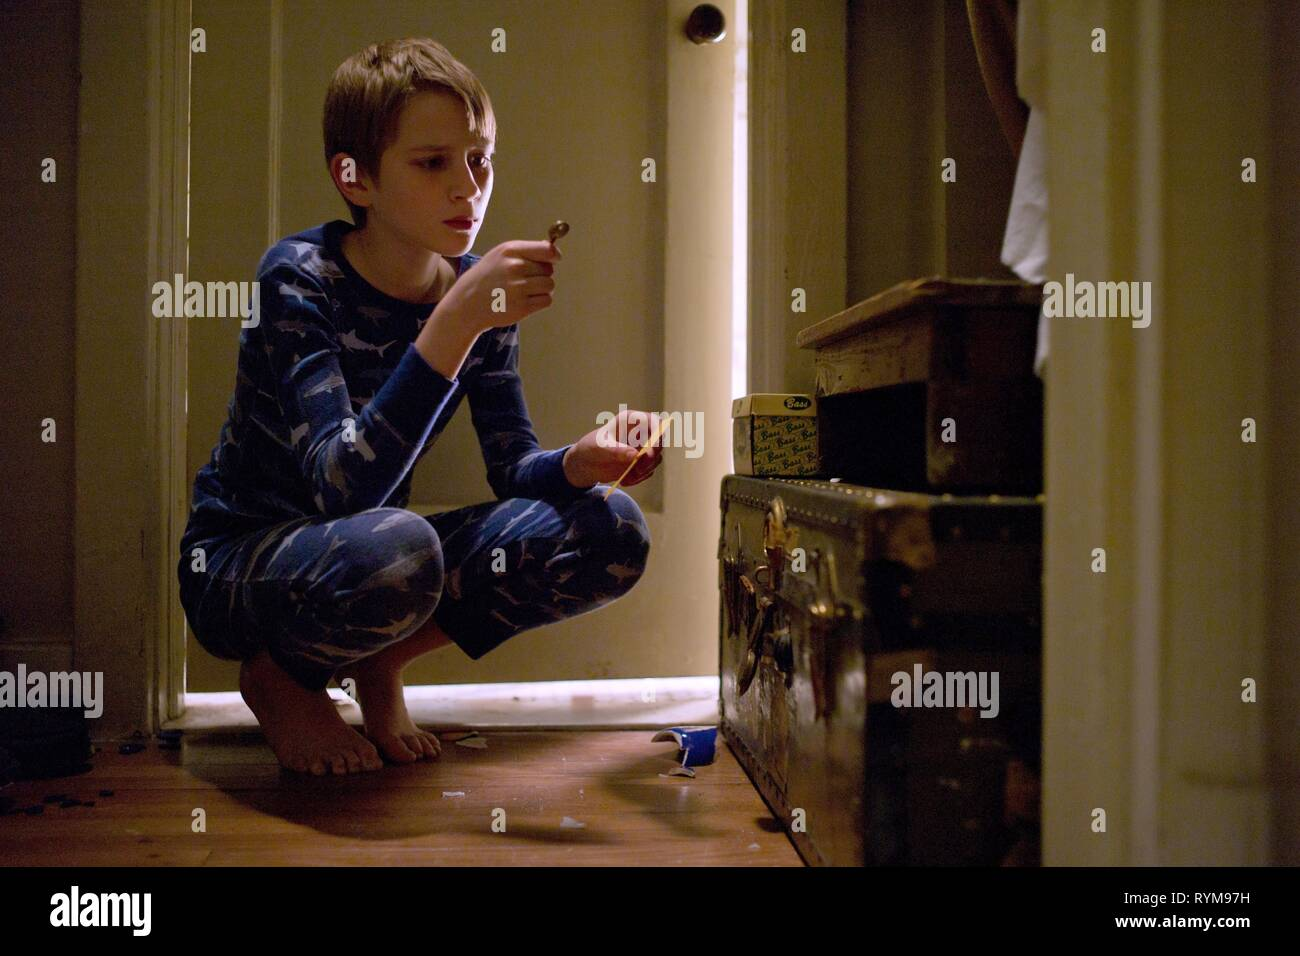 THOMAS HORN, EXTREMELY LOUD AND INCREDIBLY CLOSE, 2011 - Stock Image